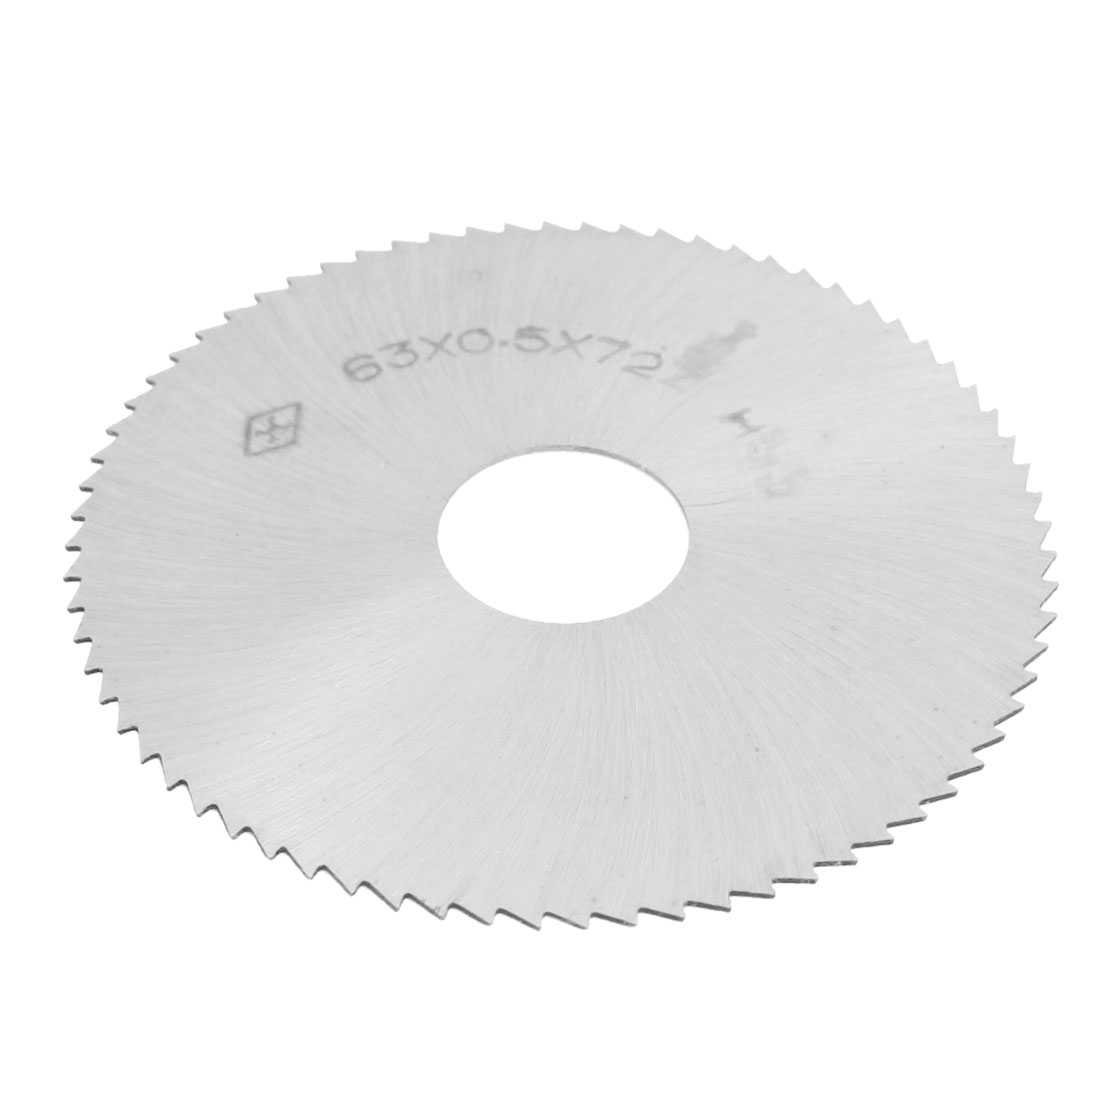 Unique Bargains Silver Tone HSS 72T Slitting Saw Blade 63mm x 0.5mm x 16mm